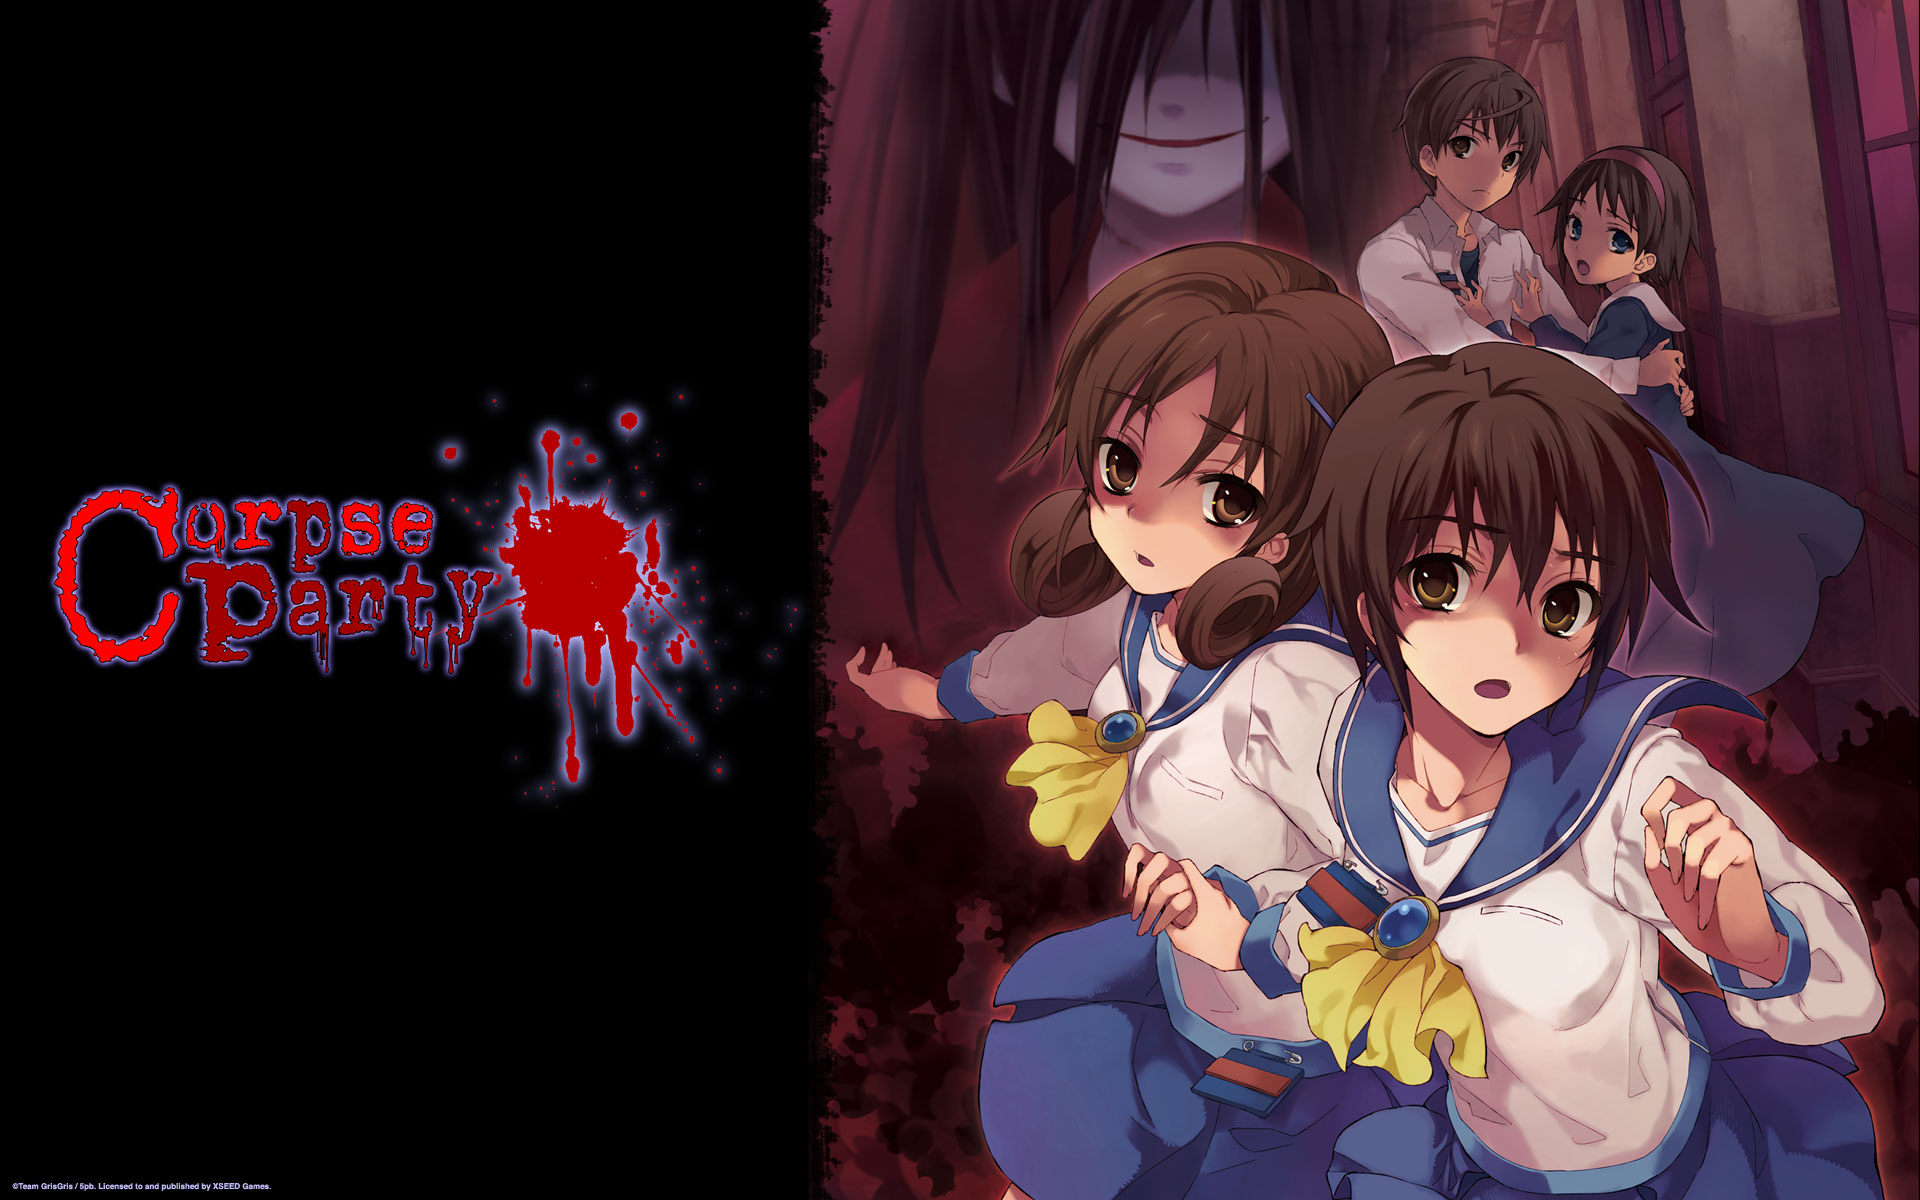 Danganronpa: The Animation Corpse Party